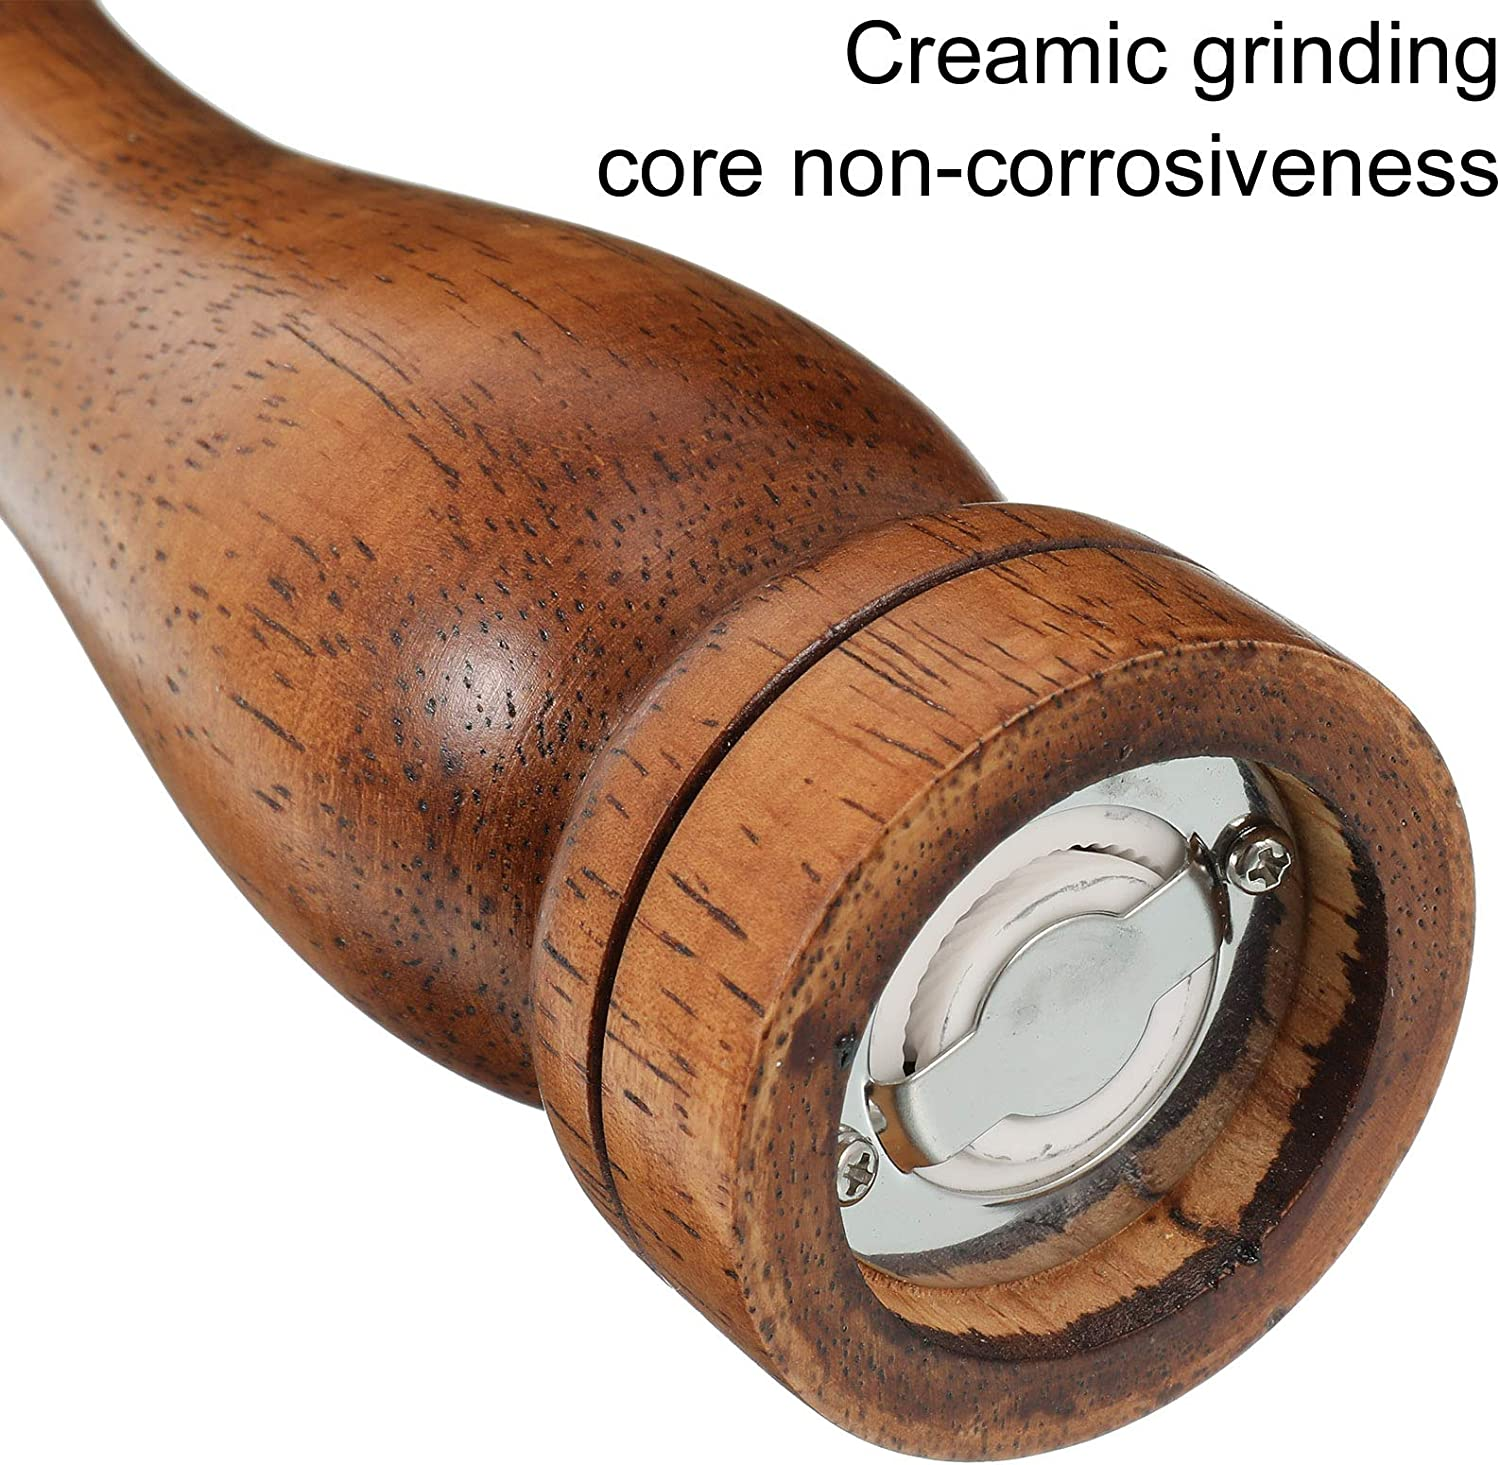 8 inch Ceramic Grinding Mechanism with Adjustable Coarseness for Professional and Home Kitchen Use Canghai Wooden Salt and Pepper Mill Grinder